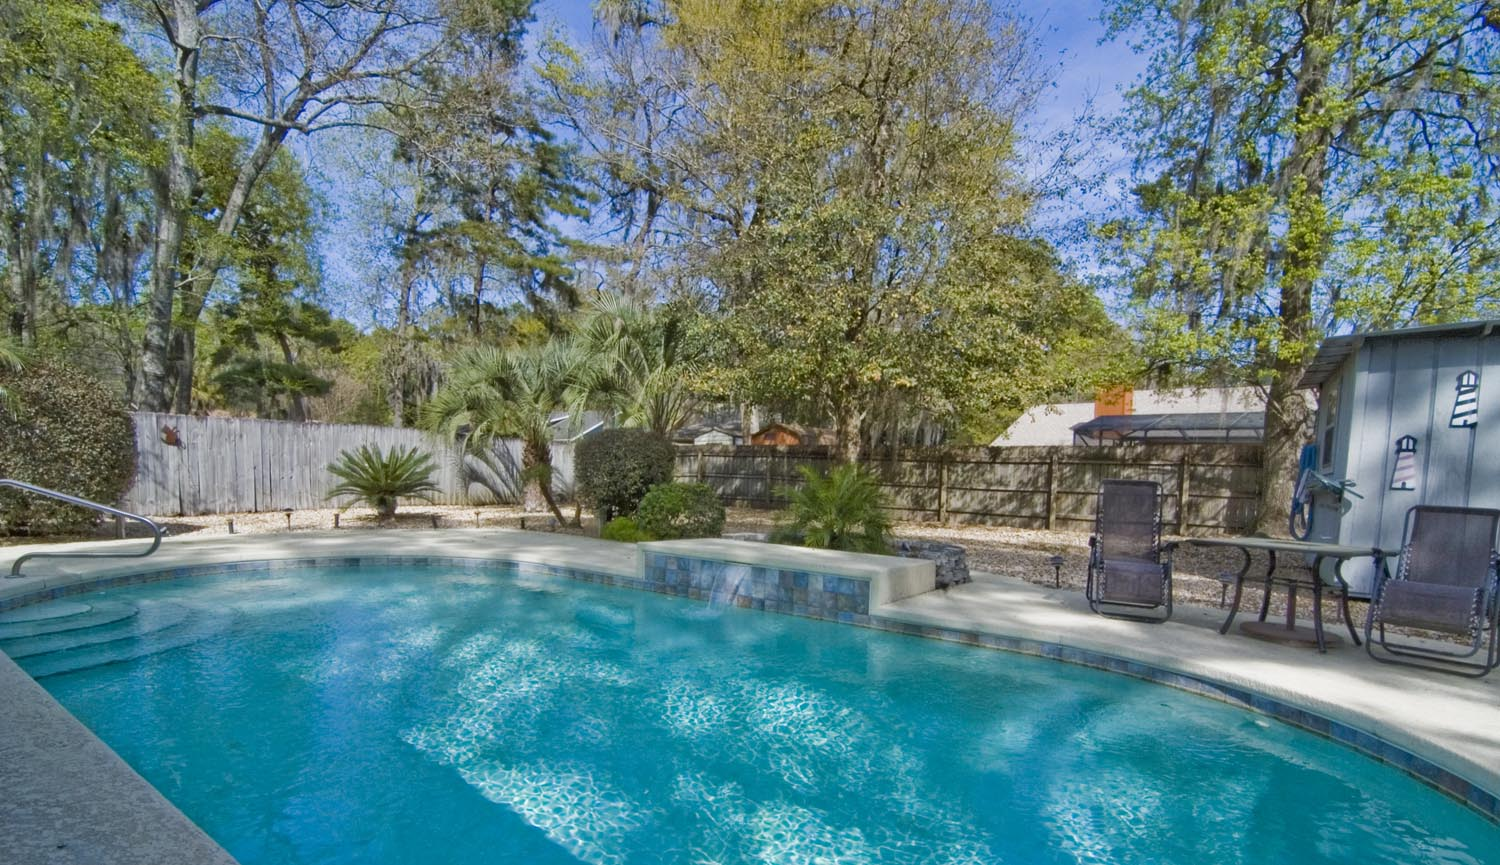 Now available summer creek pool home gainesvilleian for Florida pool show 2015